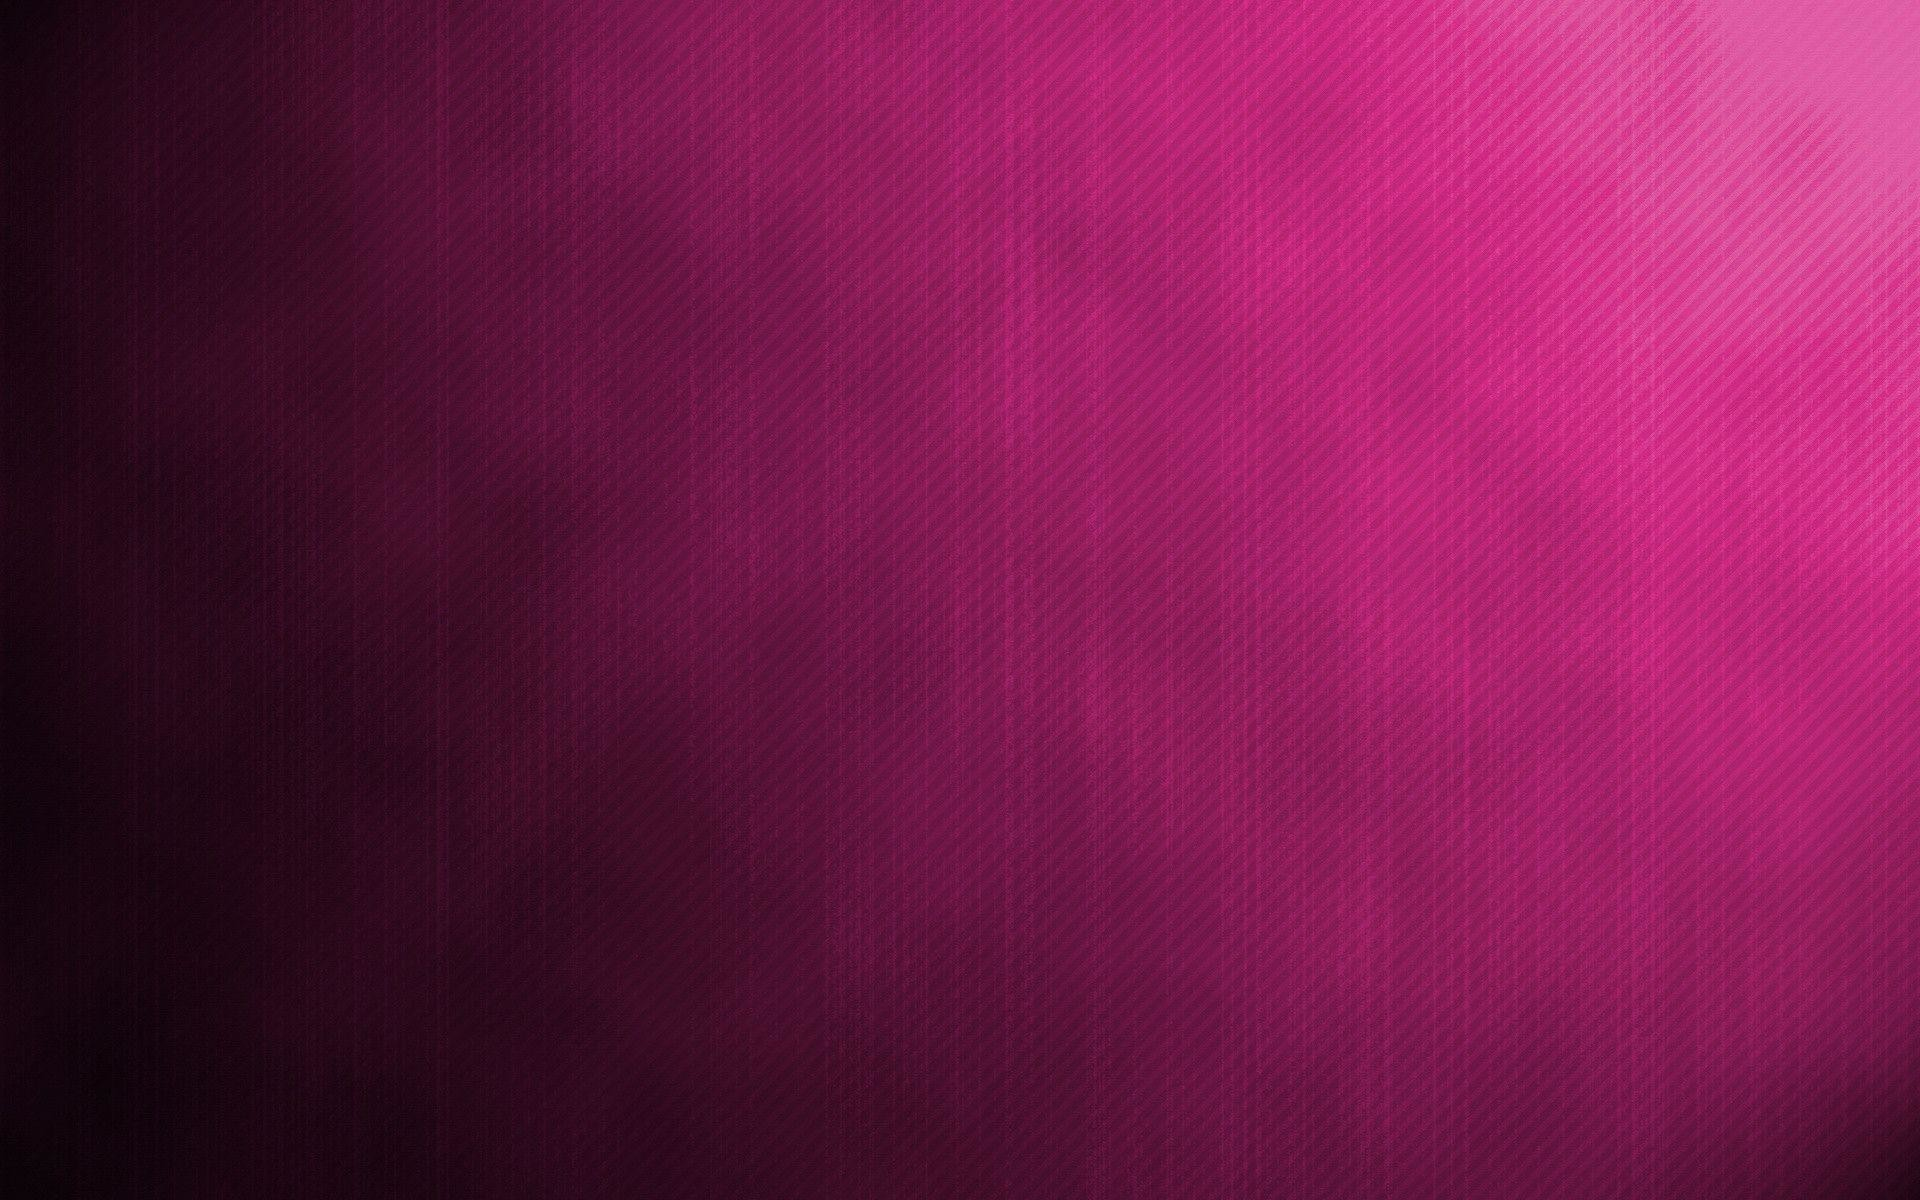 1920x1200 Simply Pink HD resolution background image.